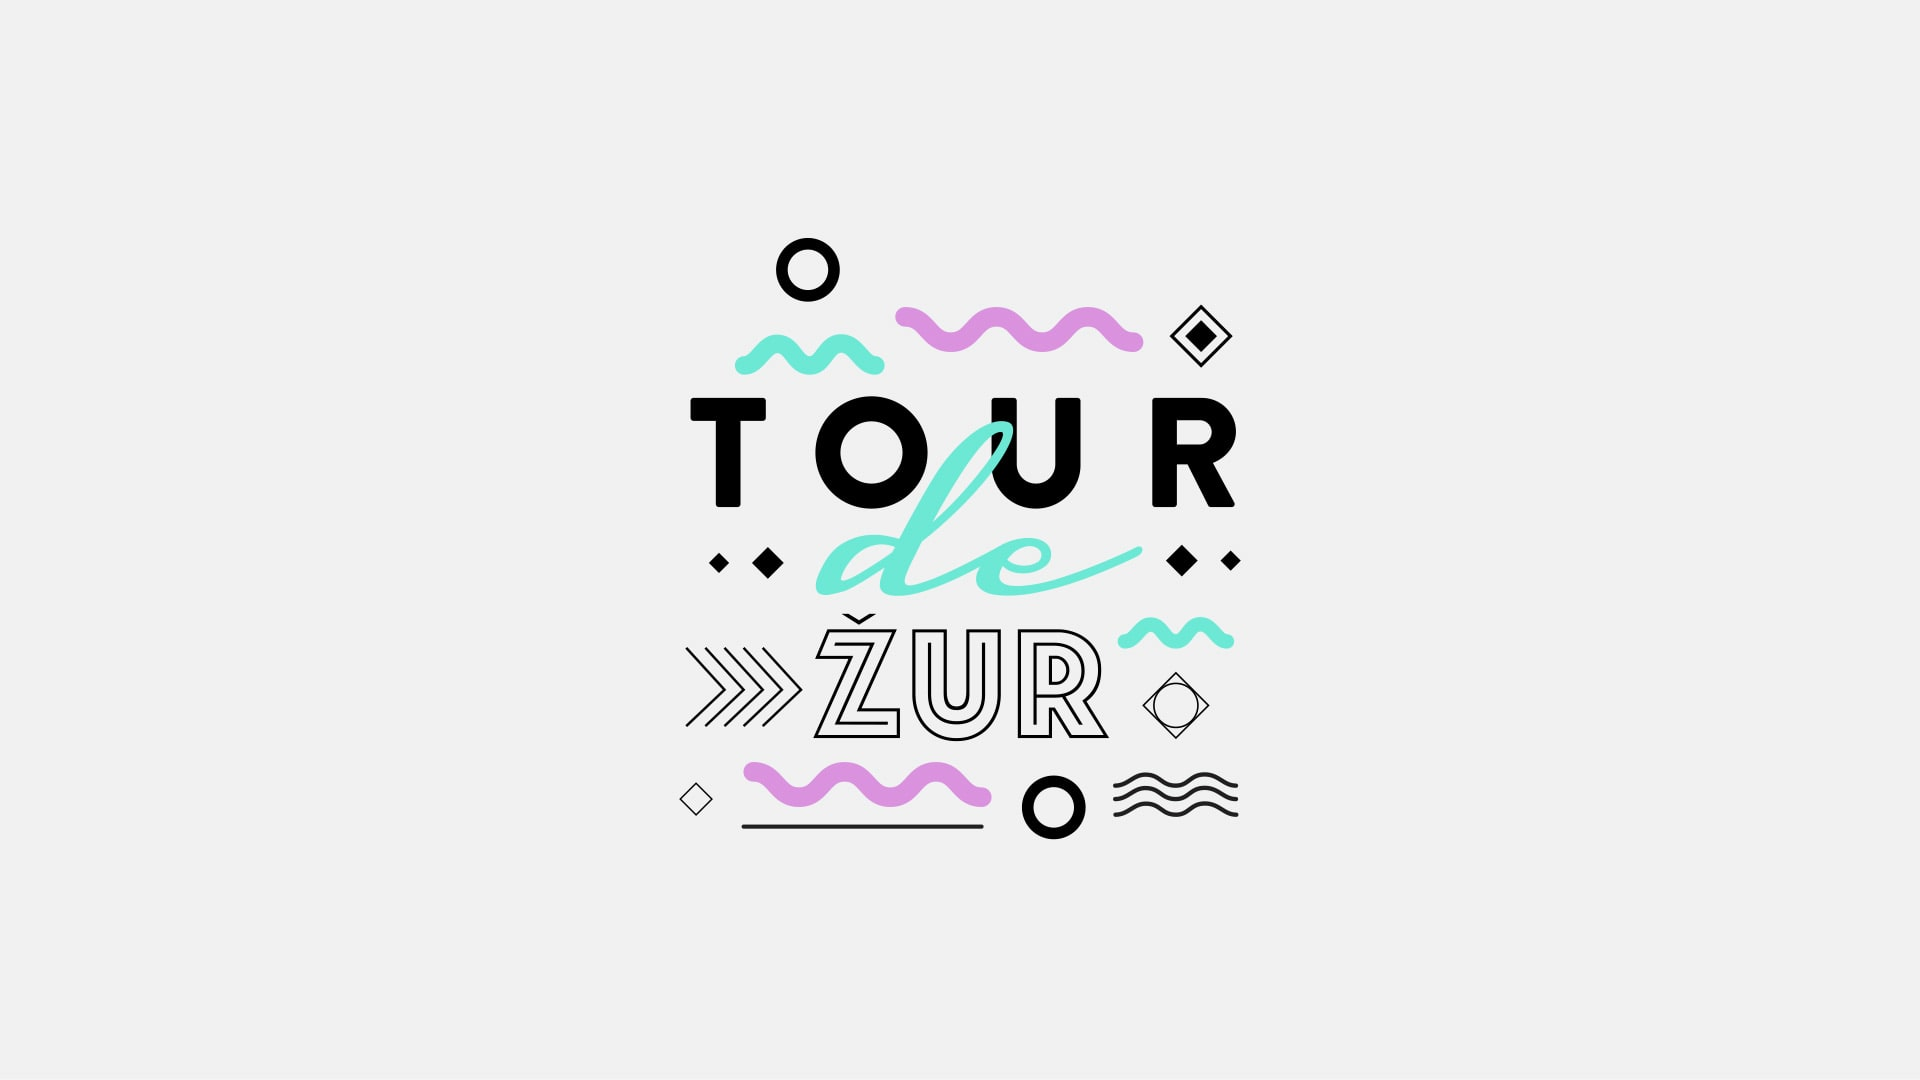 Tour-de-zur-header